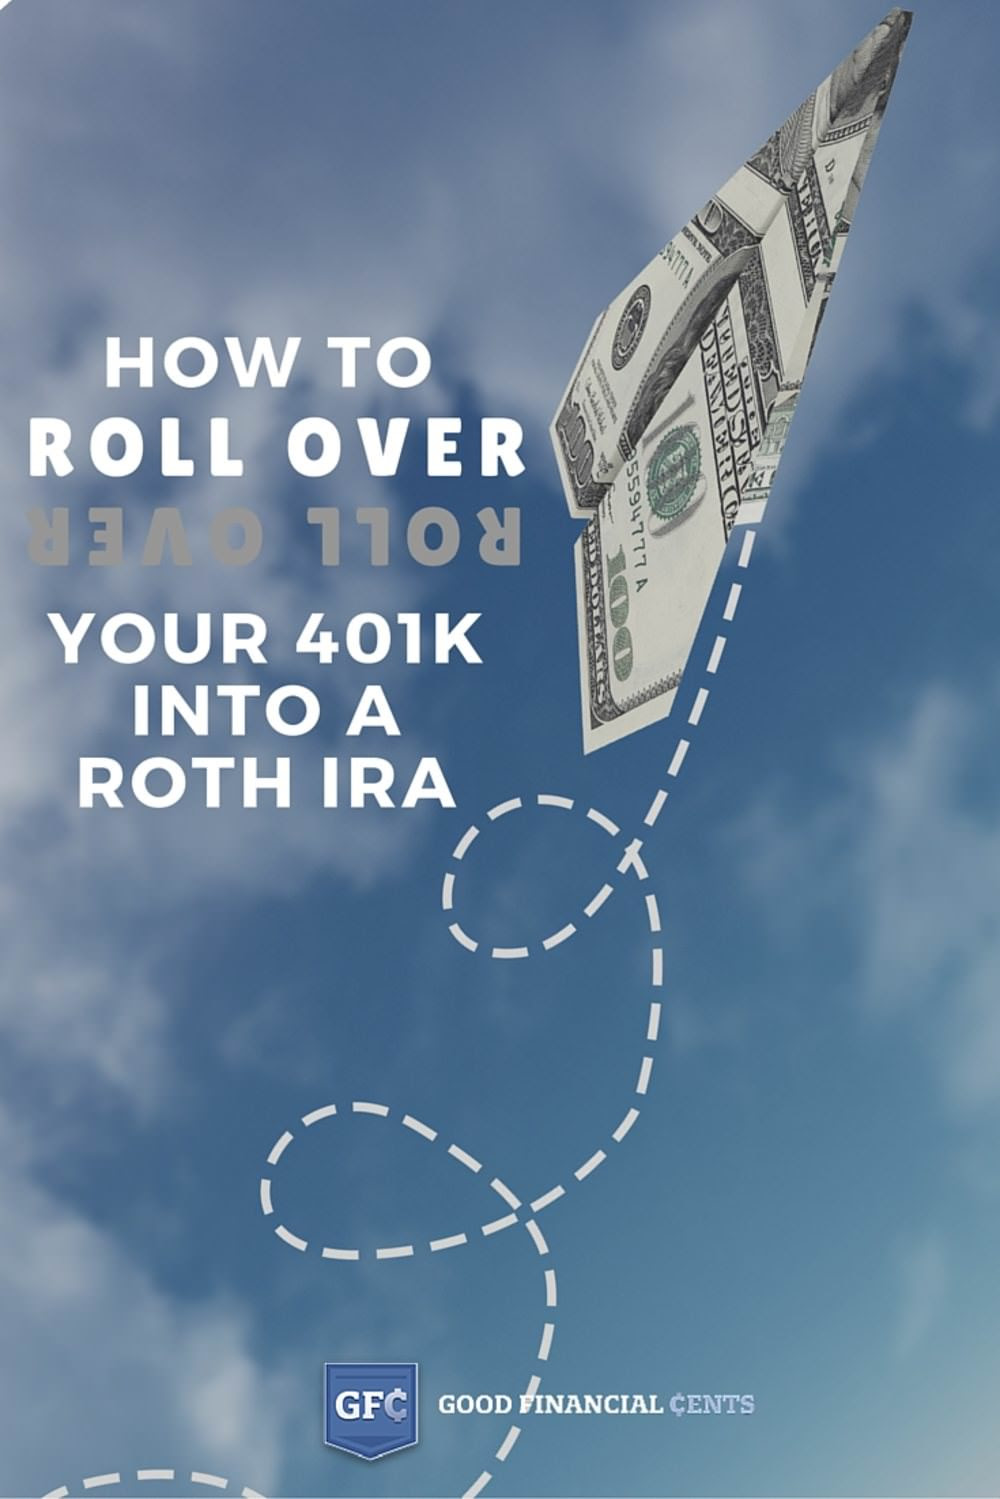 Can You Rollover Your 401k to a Roth IRA? - Good Financial ...